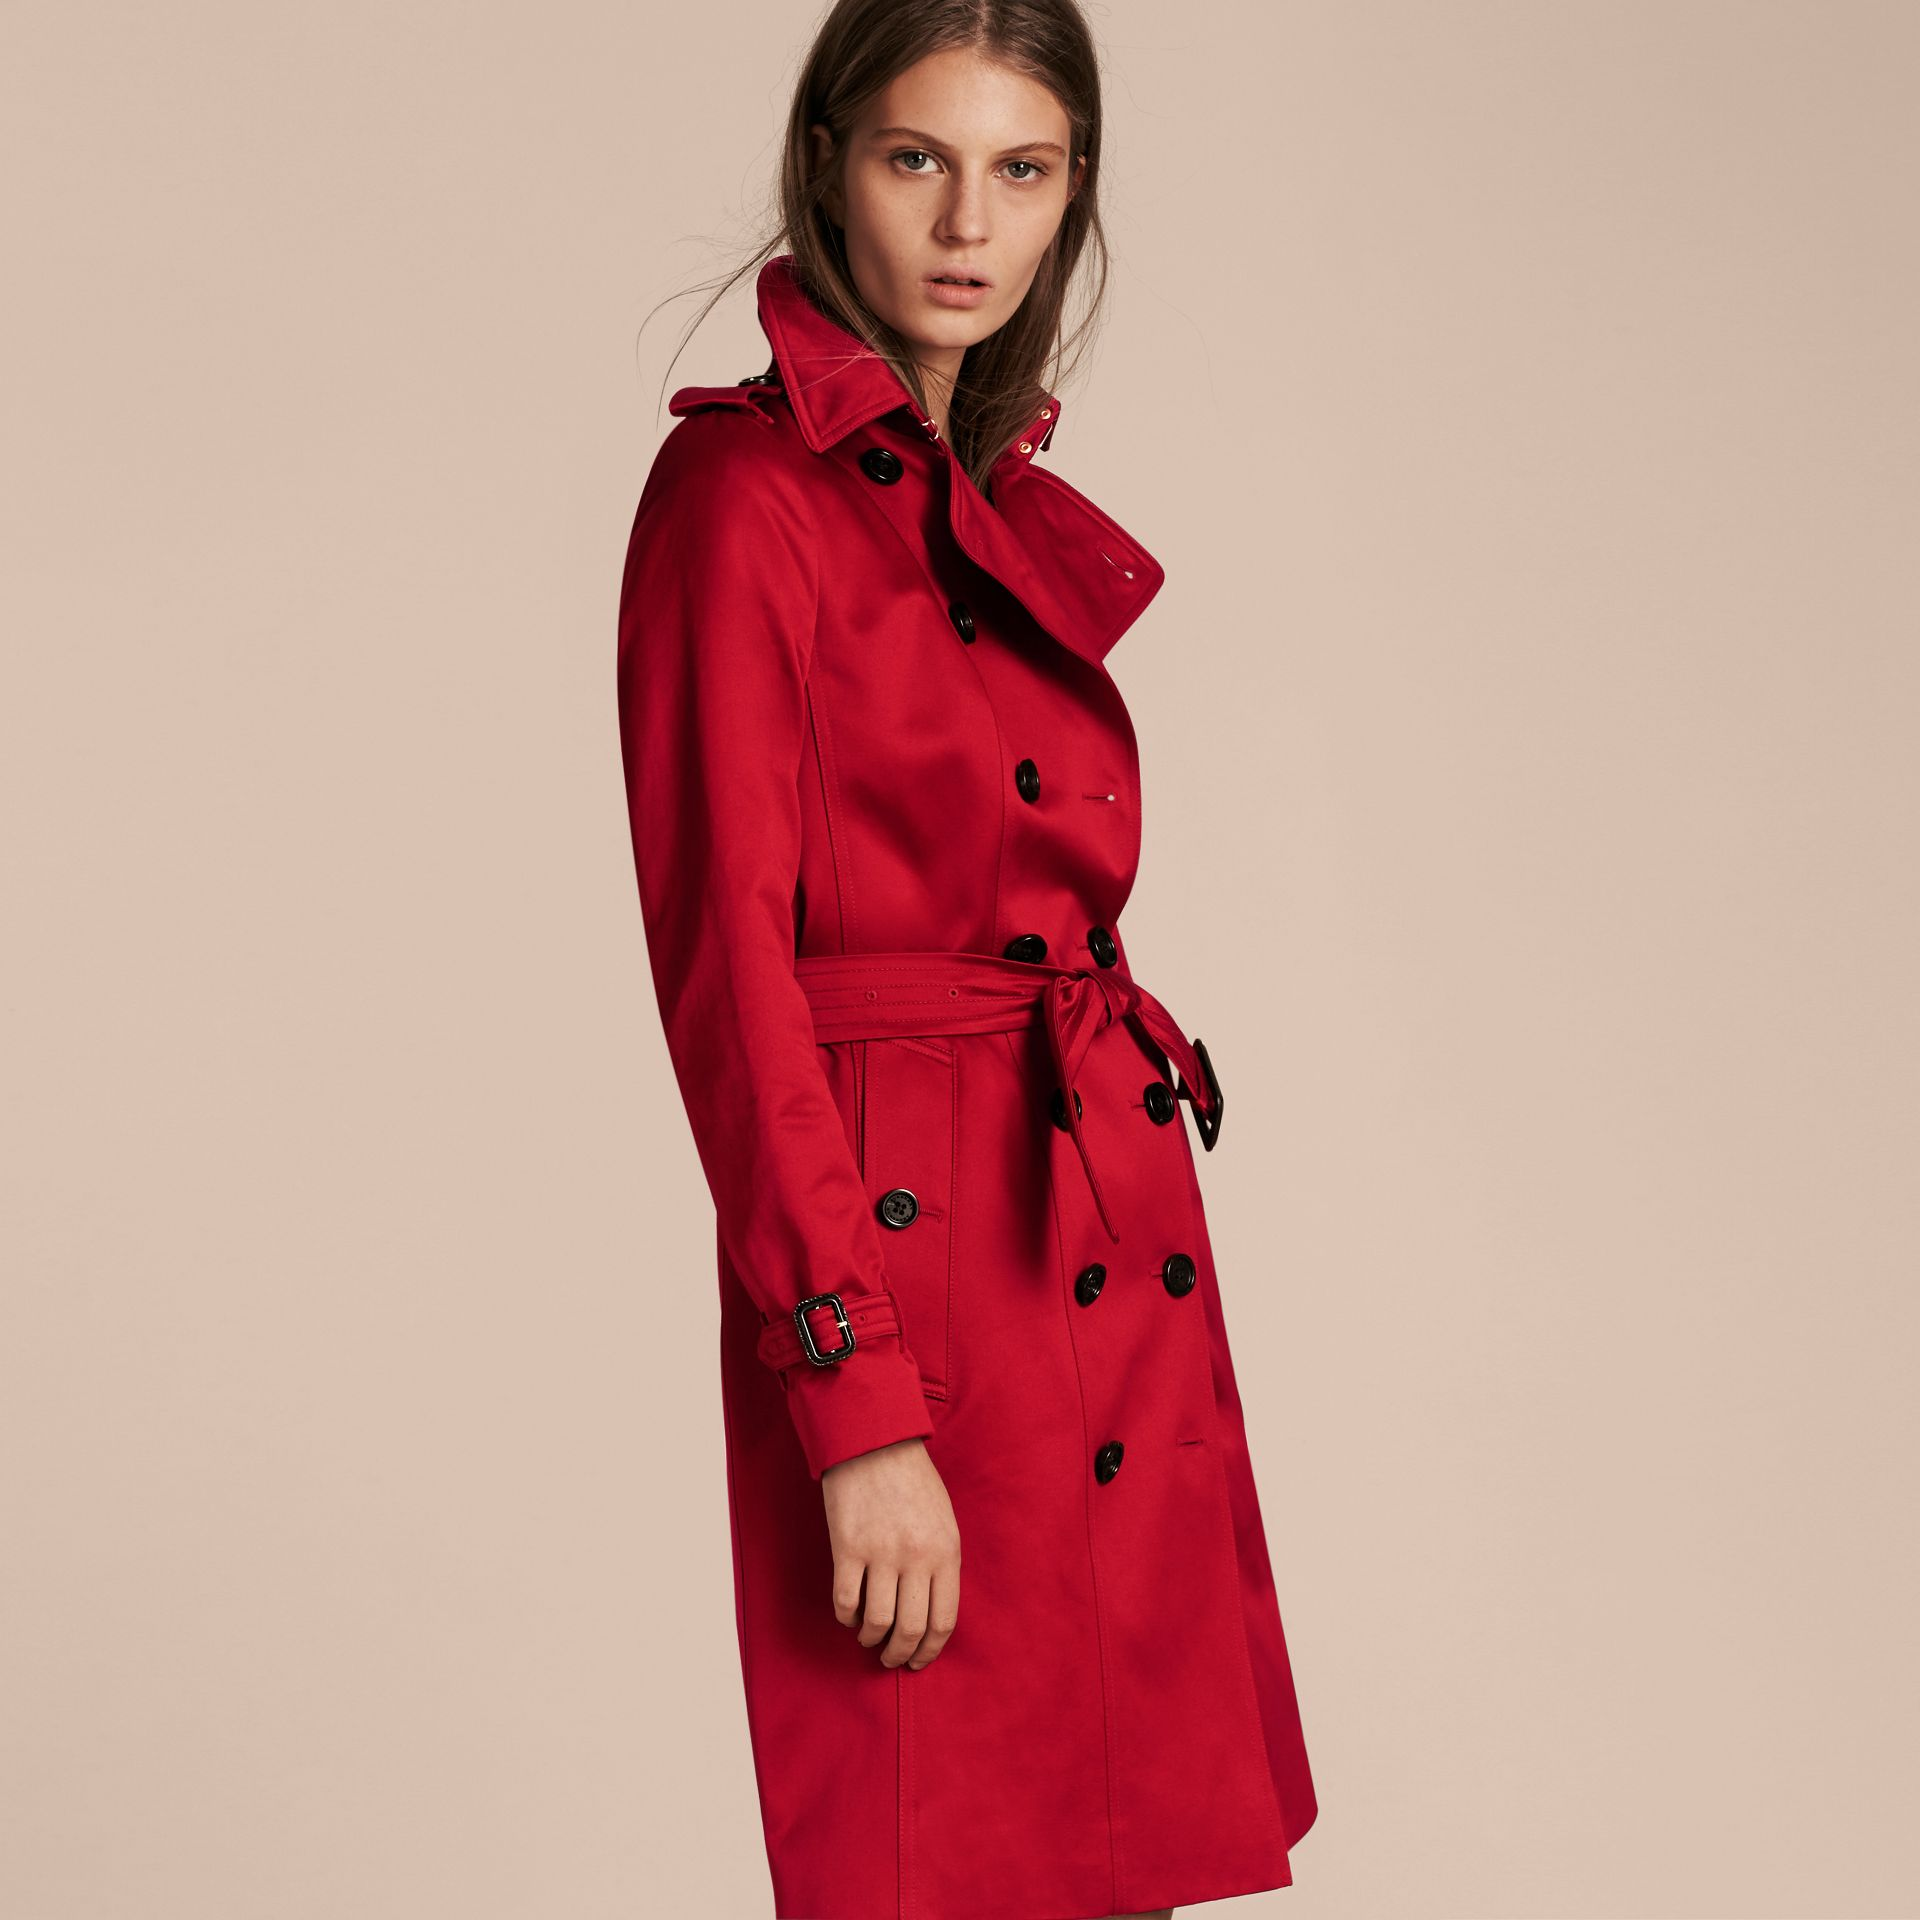 Rouge parade Trench-coat en satin de coton - photo de la galerie 7